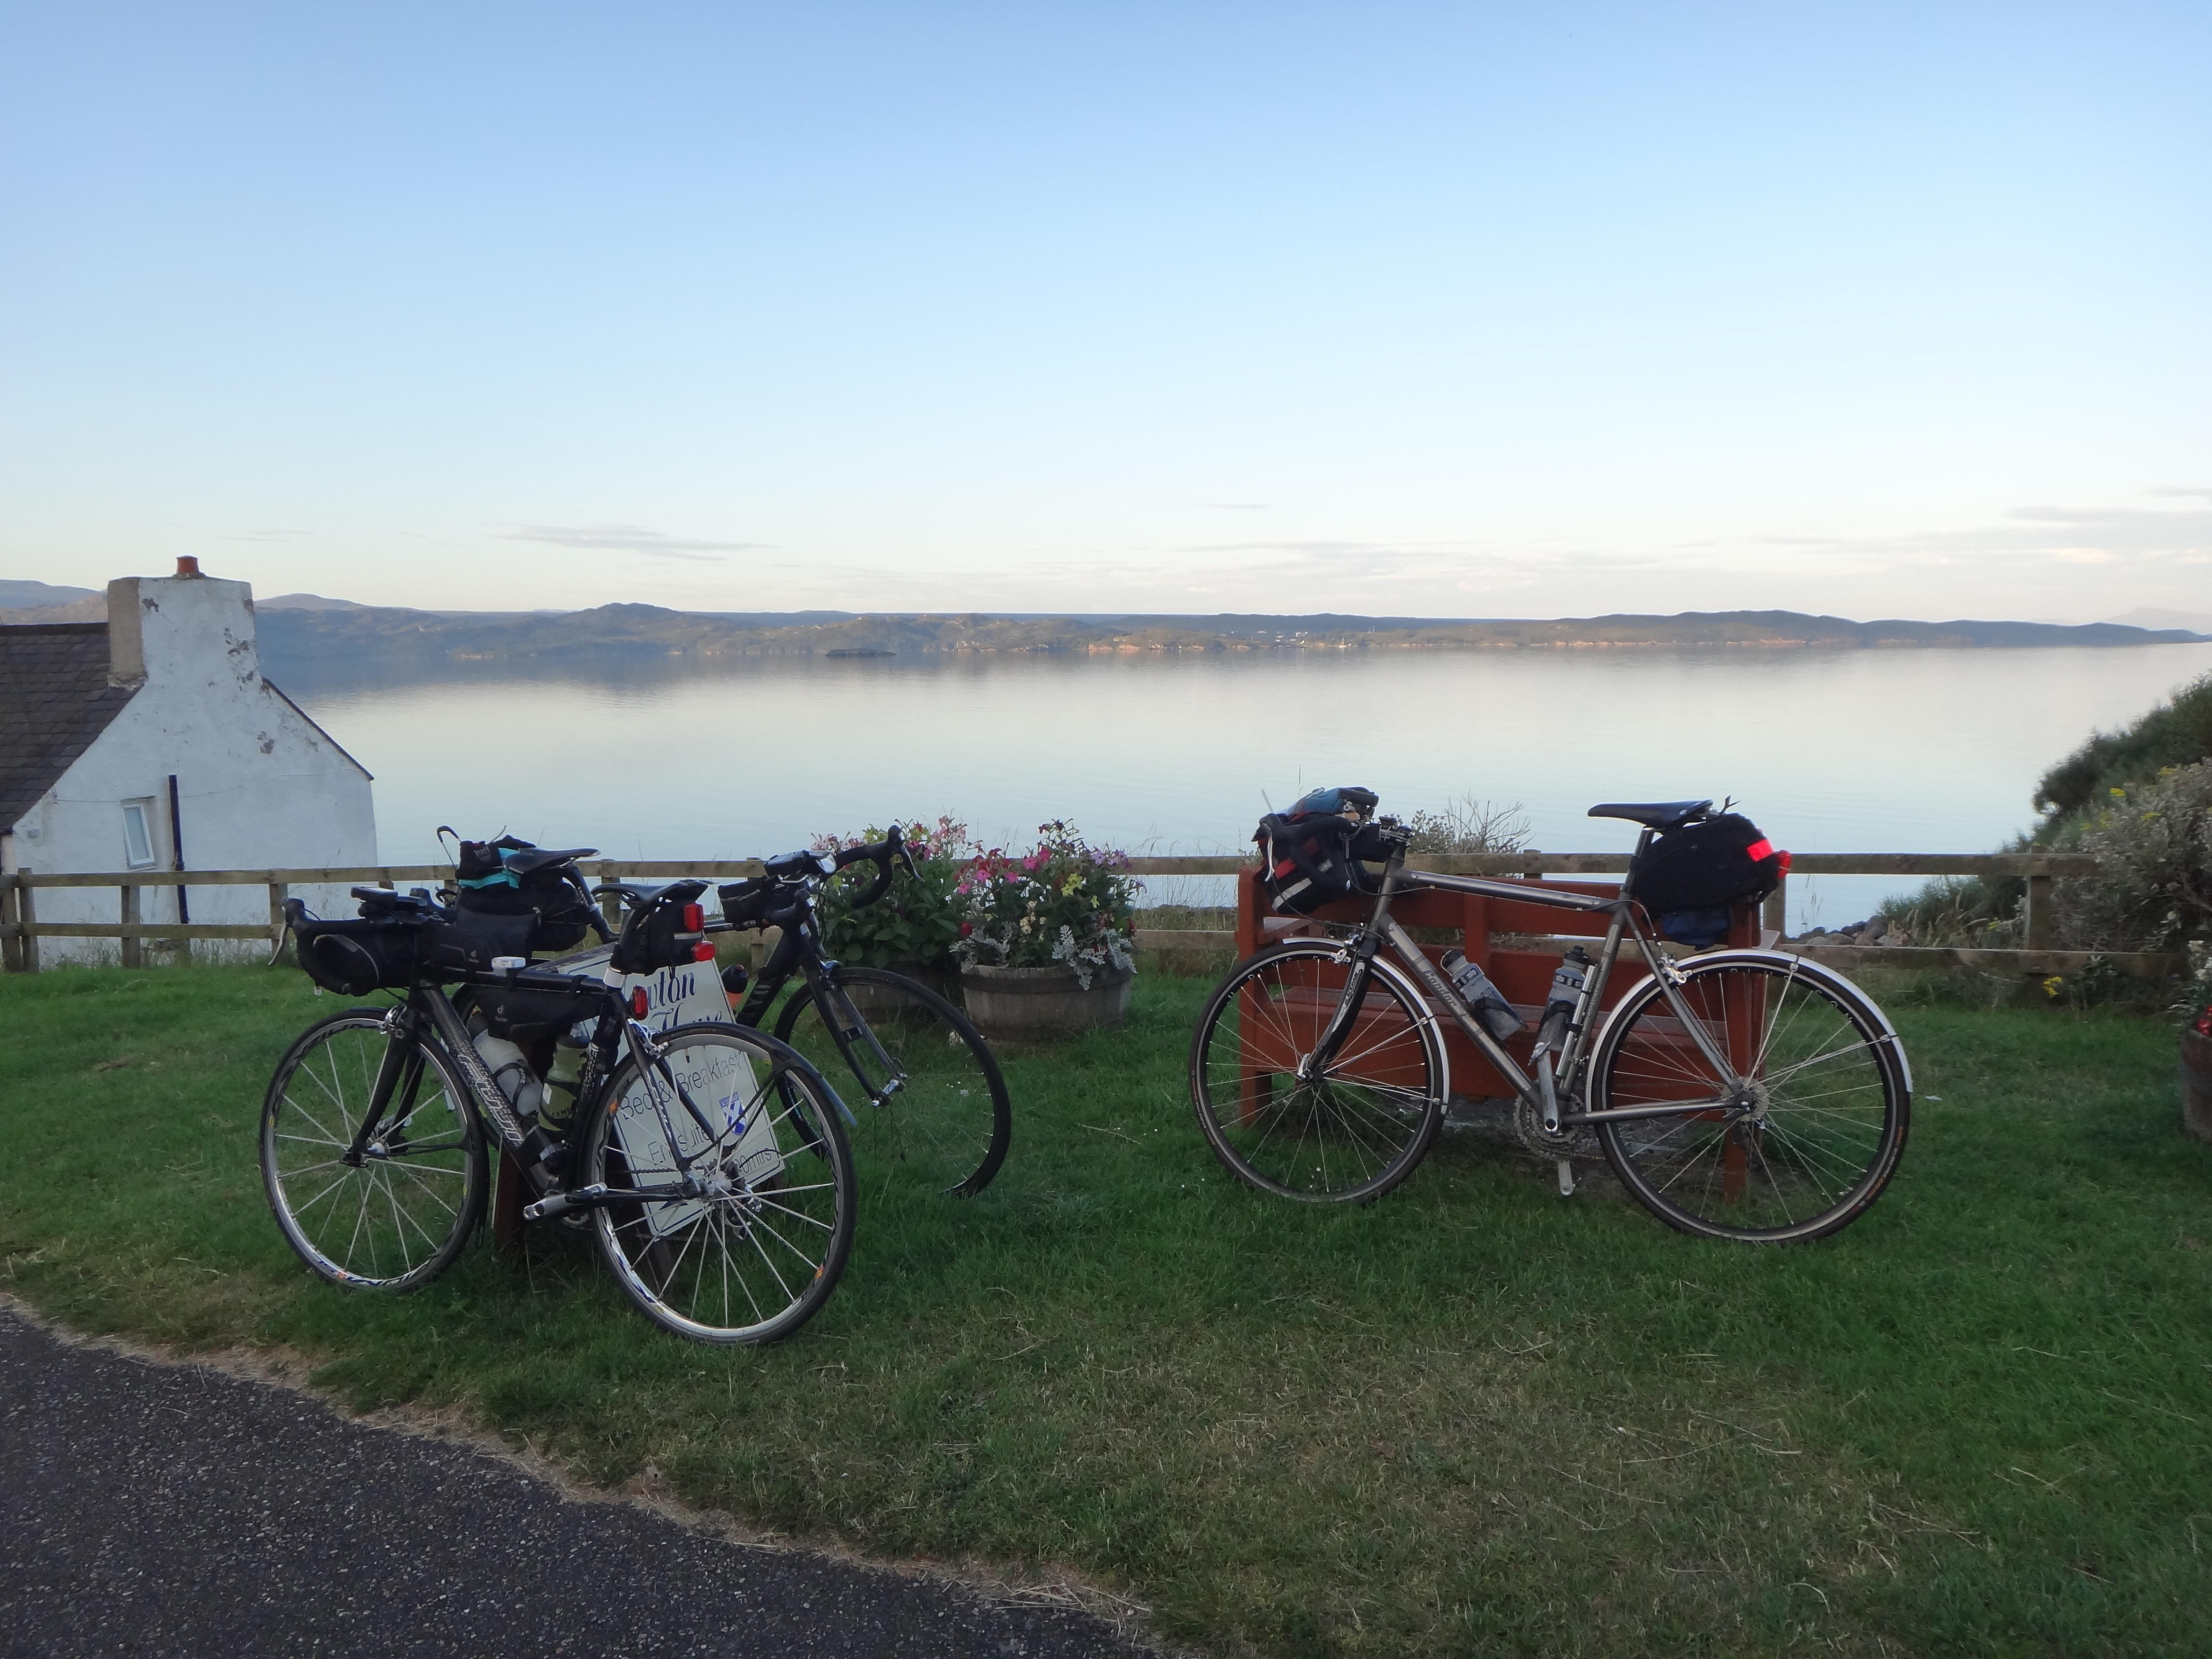 The next morning: getting ready to leave Gairloch